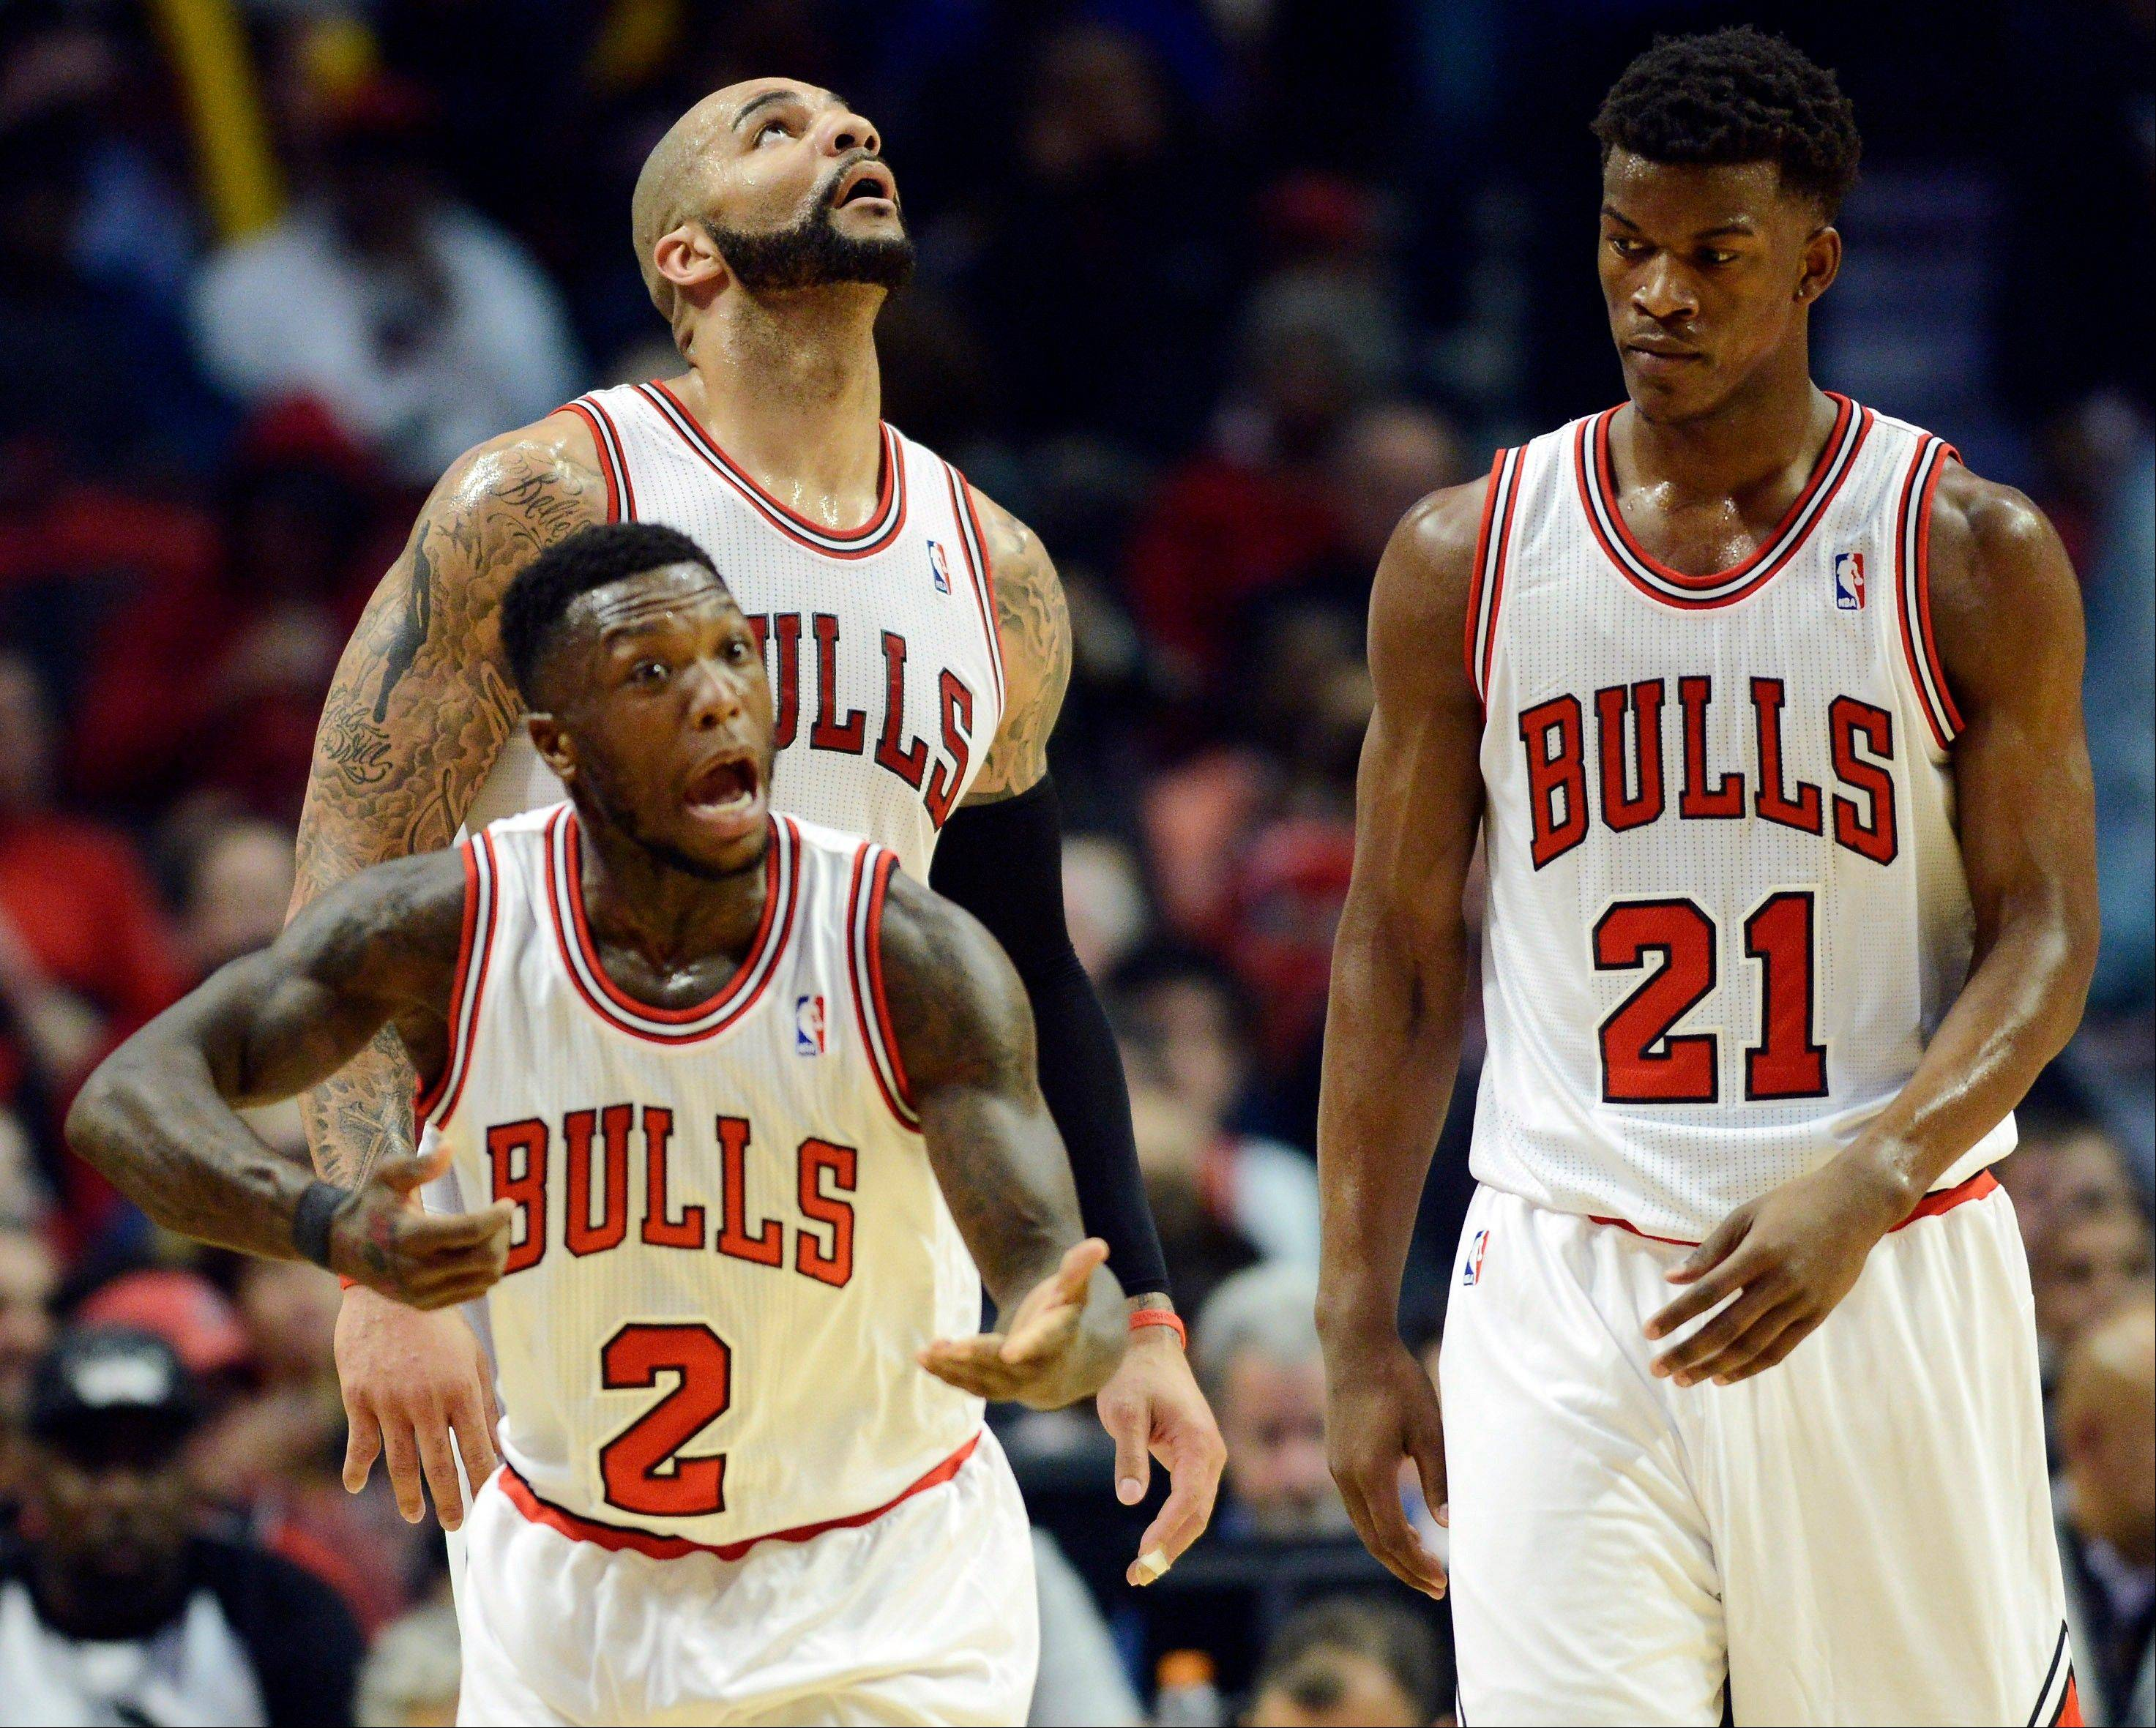 Bulls fall just short; series with Nets all tied up